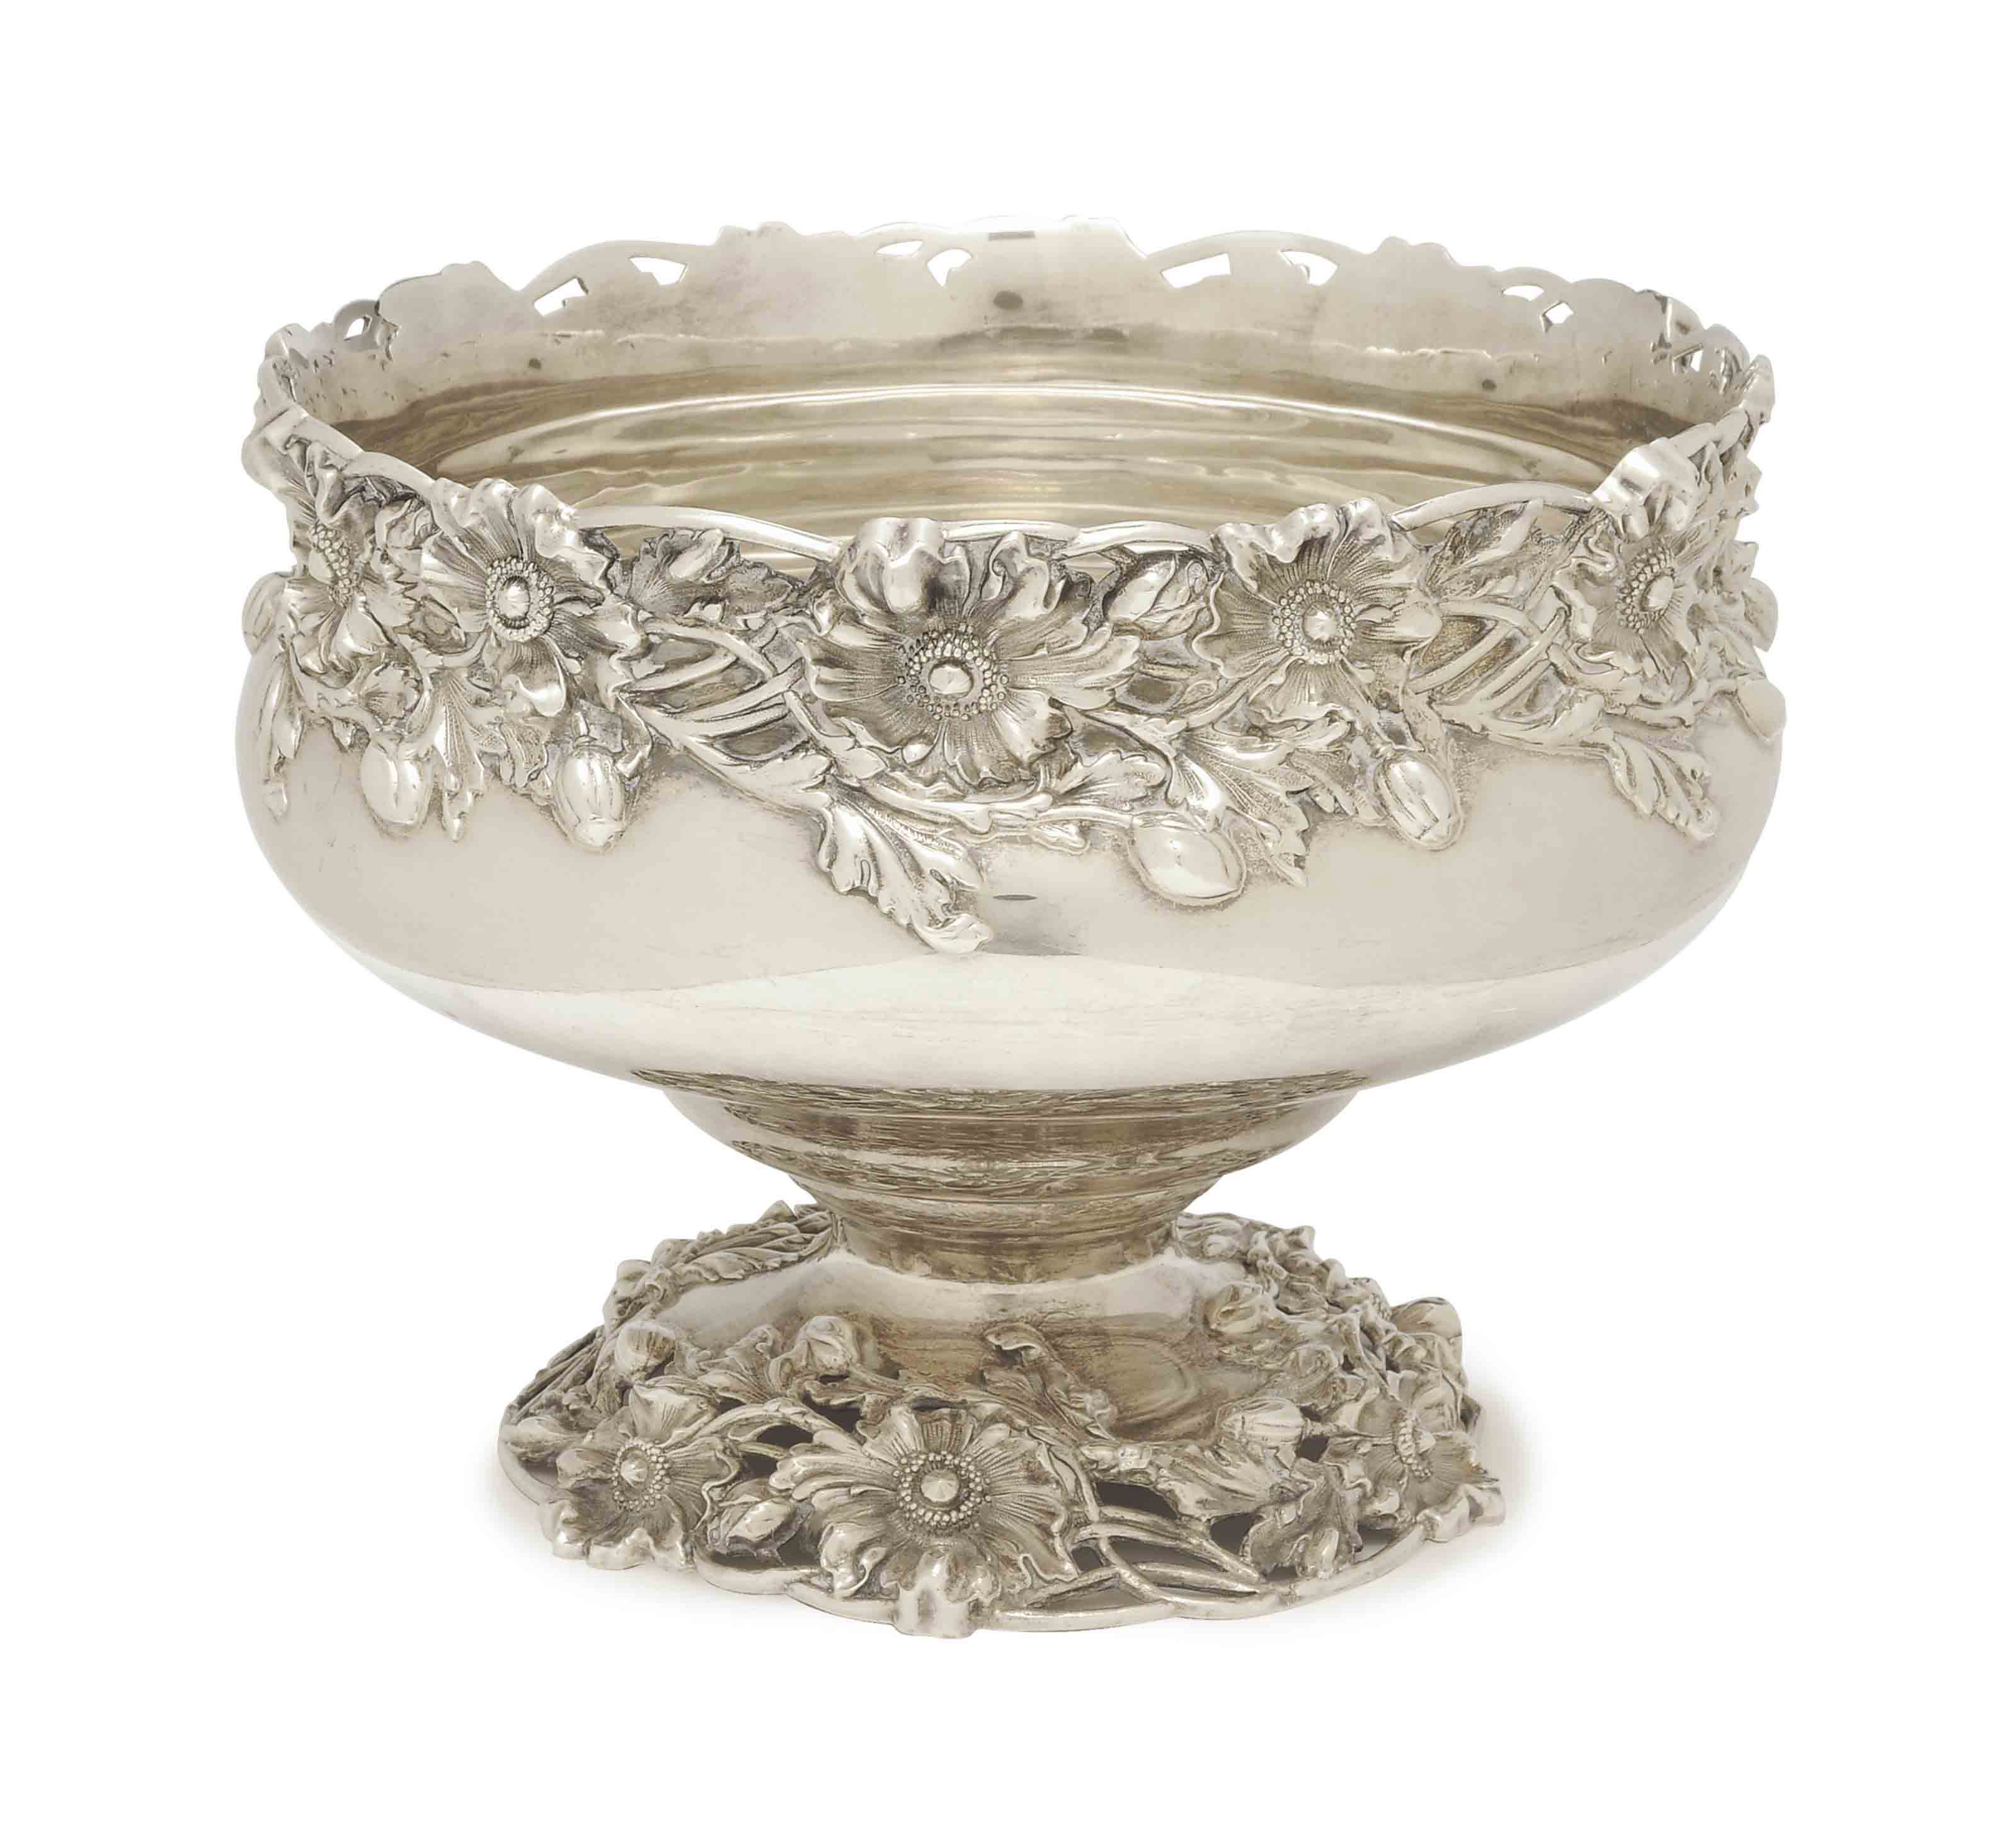 AN AMERICAN SILVER RETICULATED AND REPOUSSE FOOTED PUNCH BOWL,